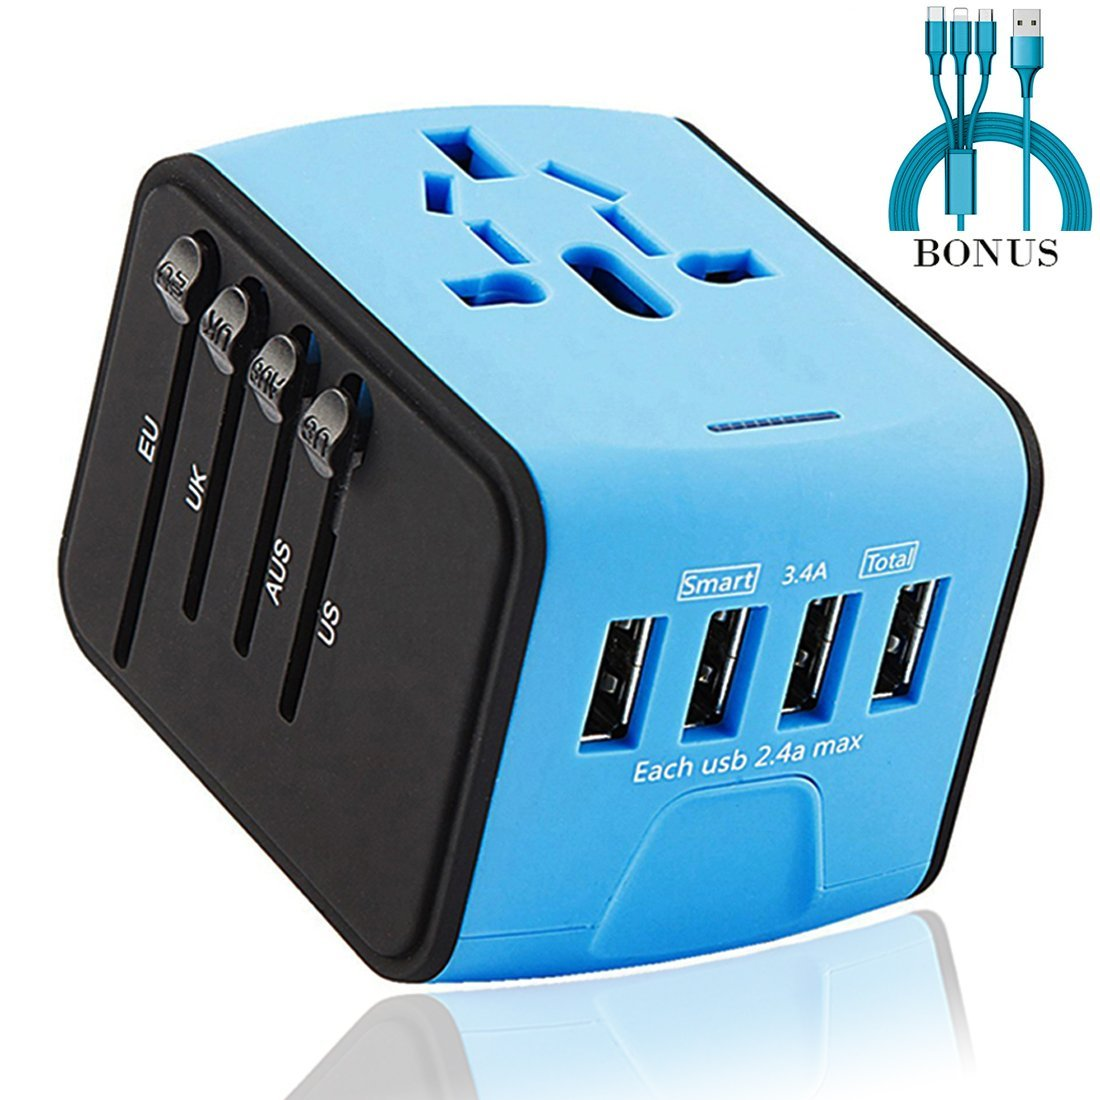 HOTINS Travel Adapter with 4-port 2.4A USB Charger Adapter US UK EU AUS All in One Universal Wall Charger for Iphone Ipad Power Bank Camera(Bonus: Type C, Iphone,Android 3 in one charge cable) Blue